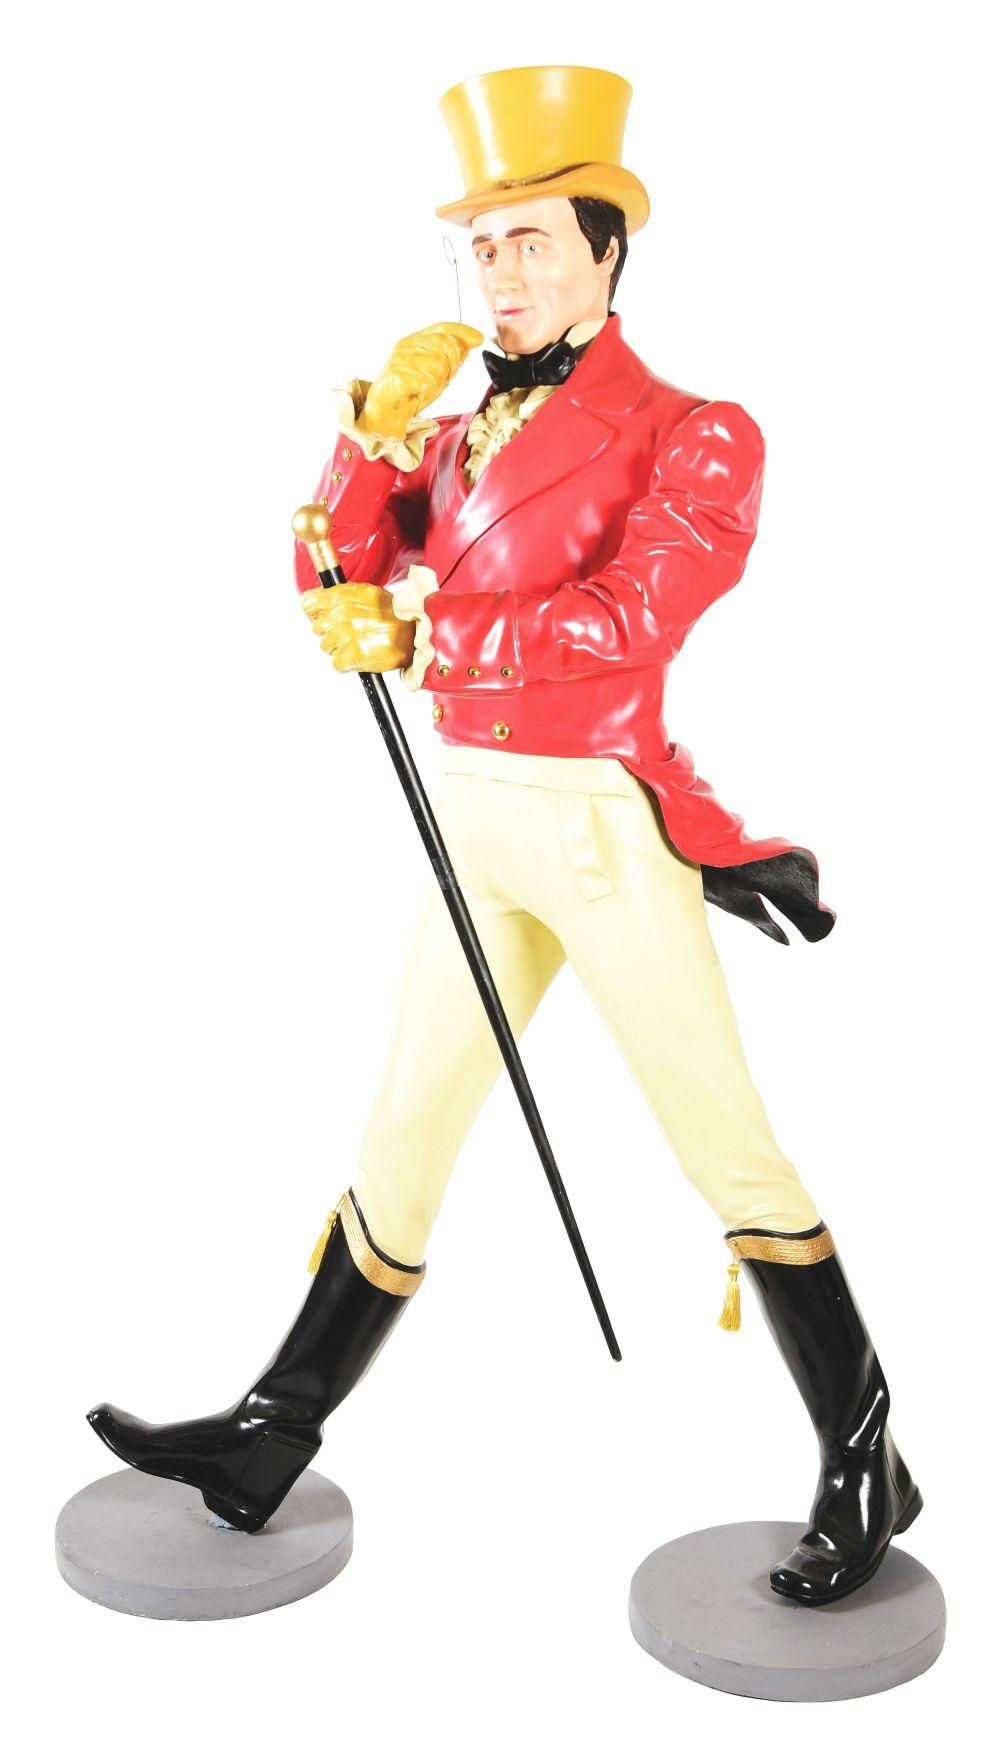 Lot 2587: Johnny Walker Advertising Figure.